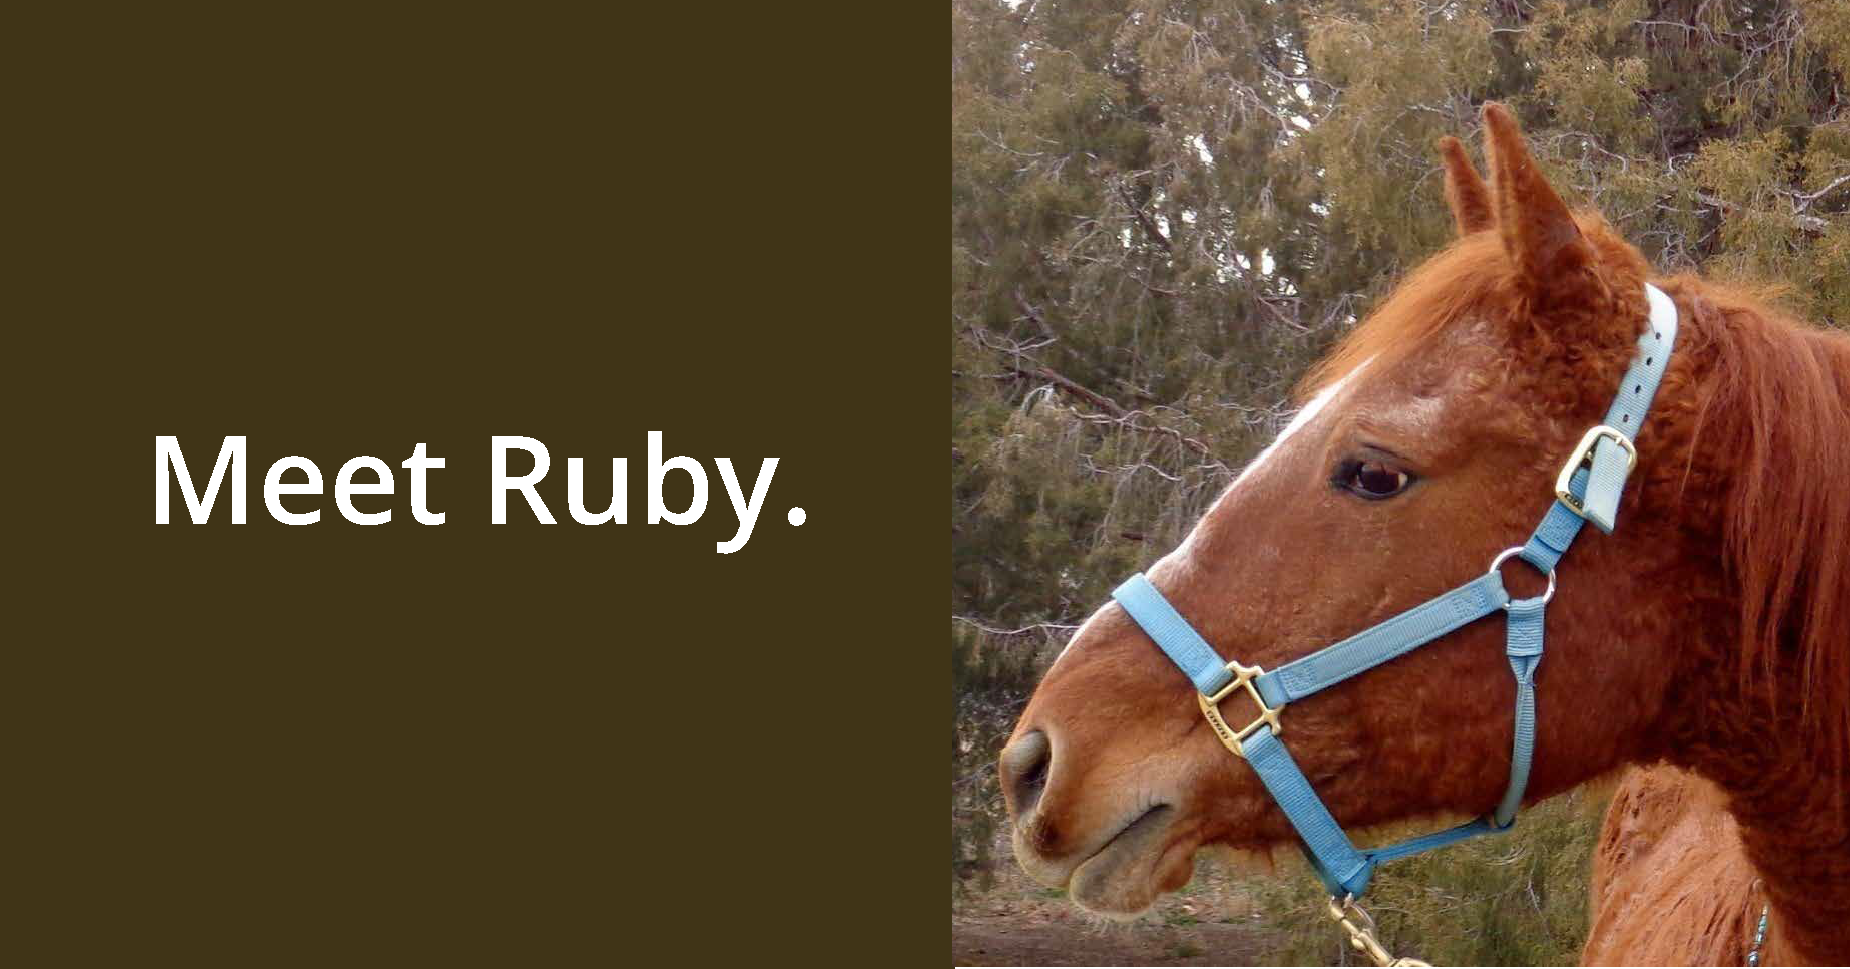 Meet Ruby GIF copy_Page_1.png